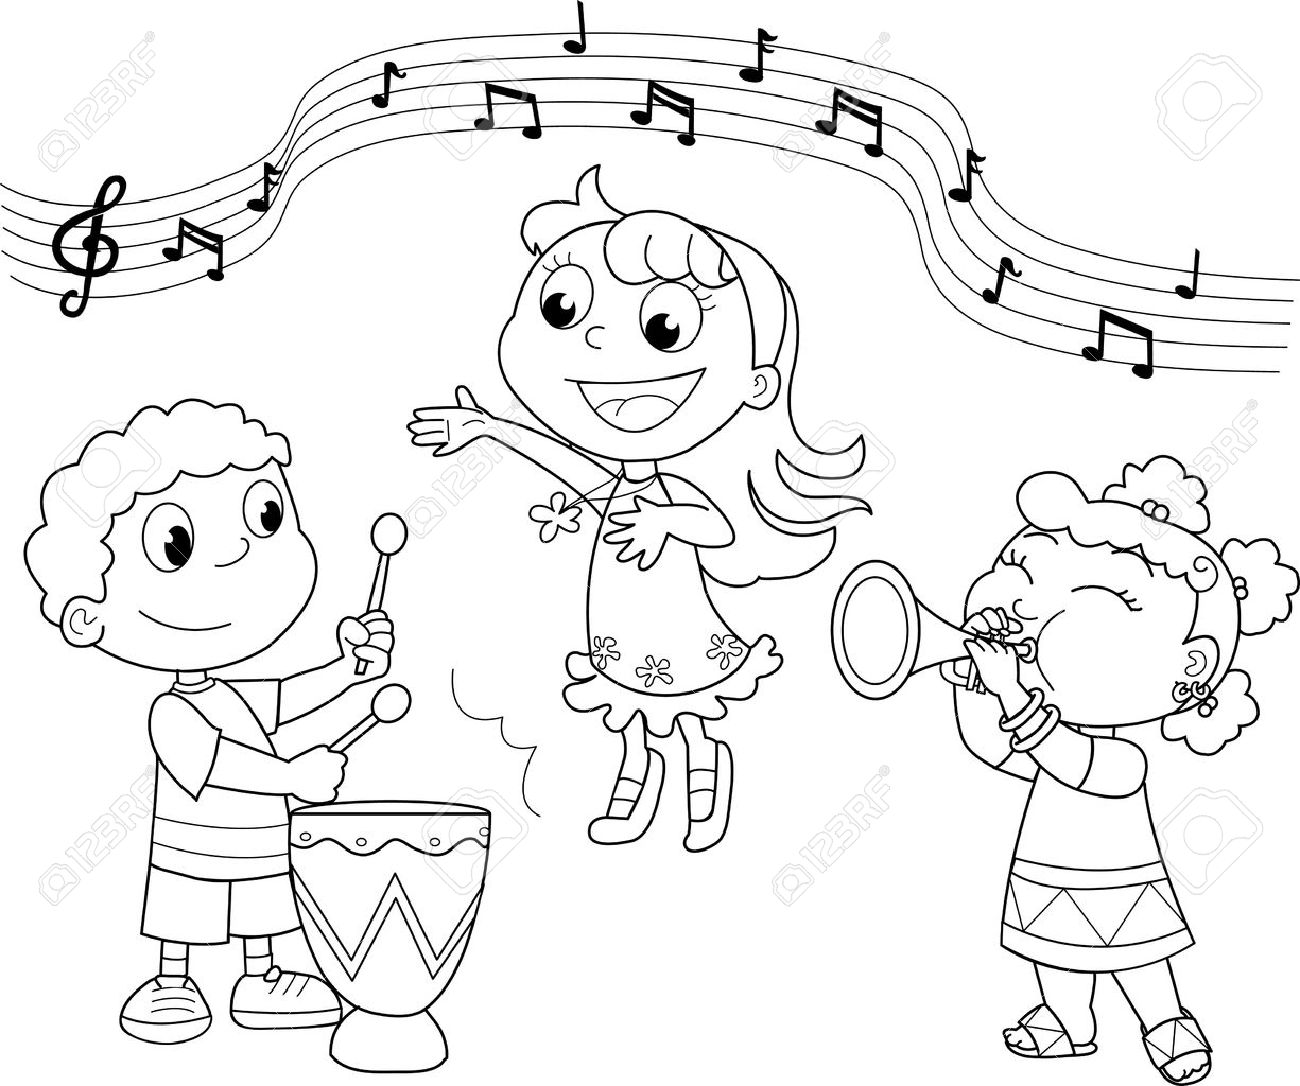 music band: children playing and singing. black and white